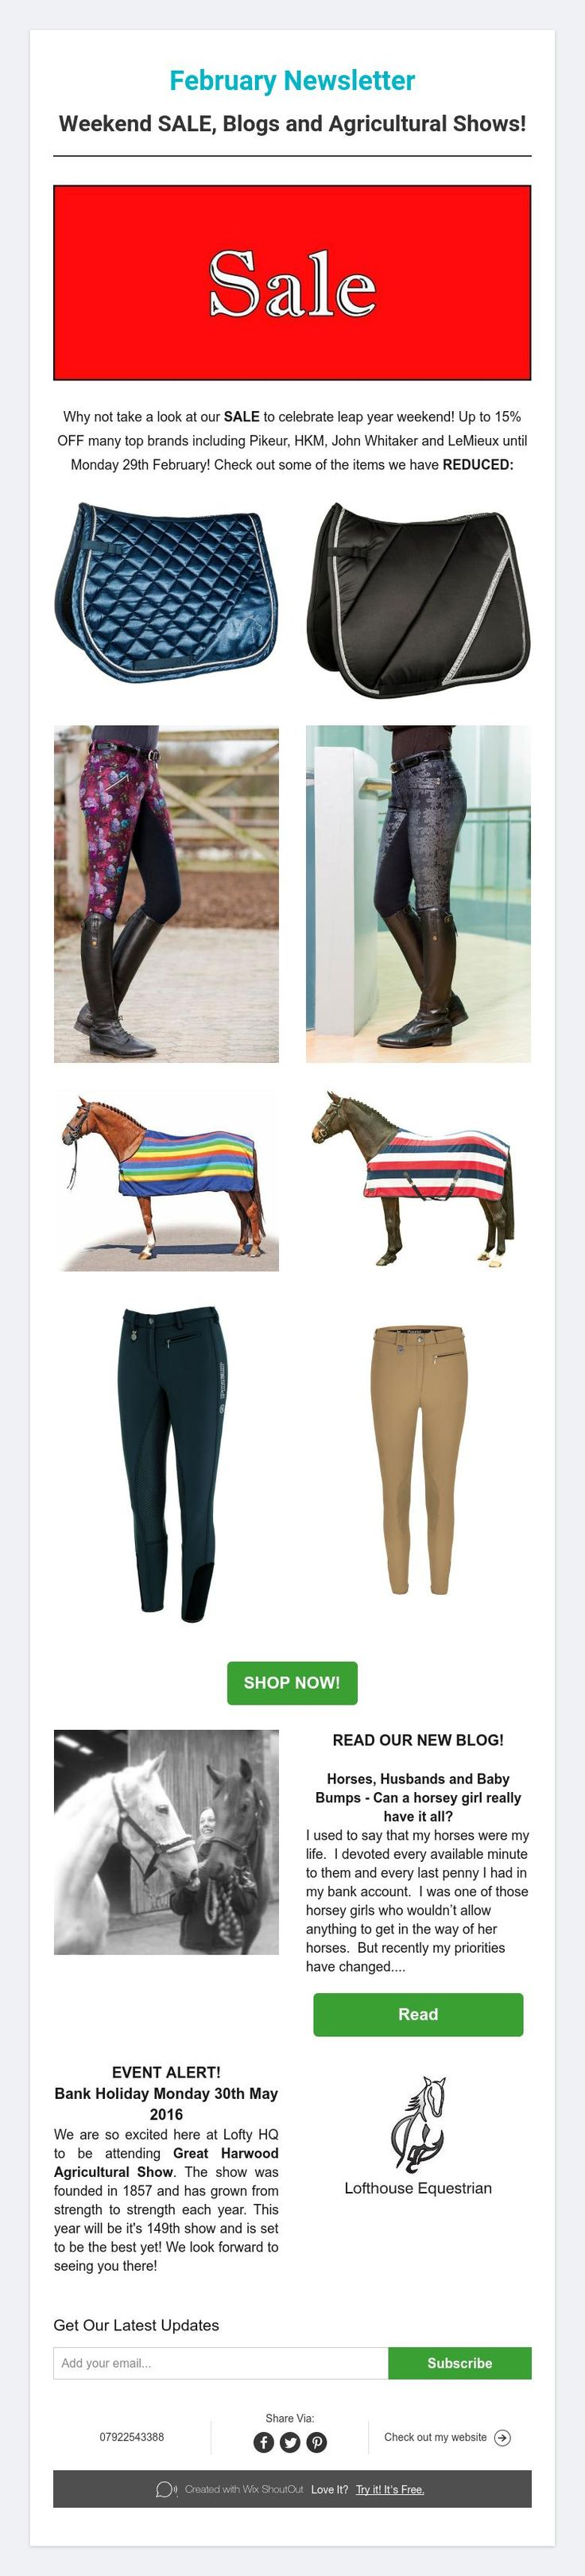 February Newsletter from Lofthouse Equestrian; Weekend SALE, Blogs and Agricultural Shows! #LofthouseEquestrian